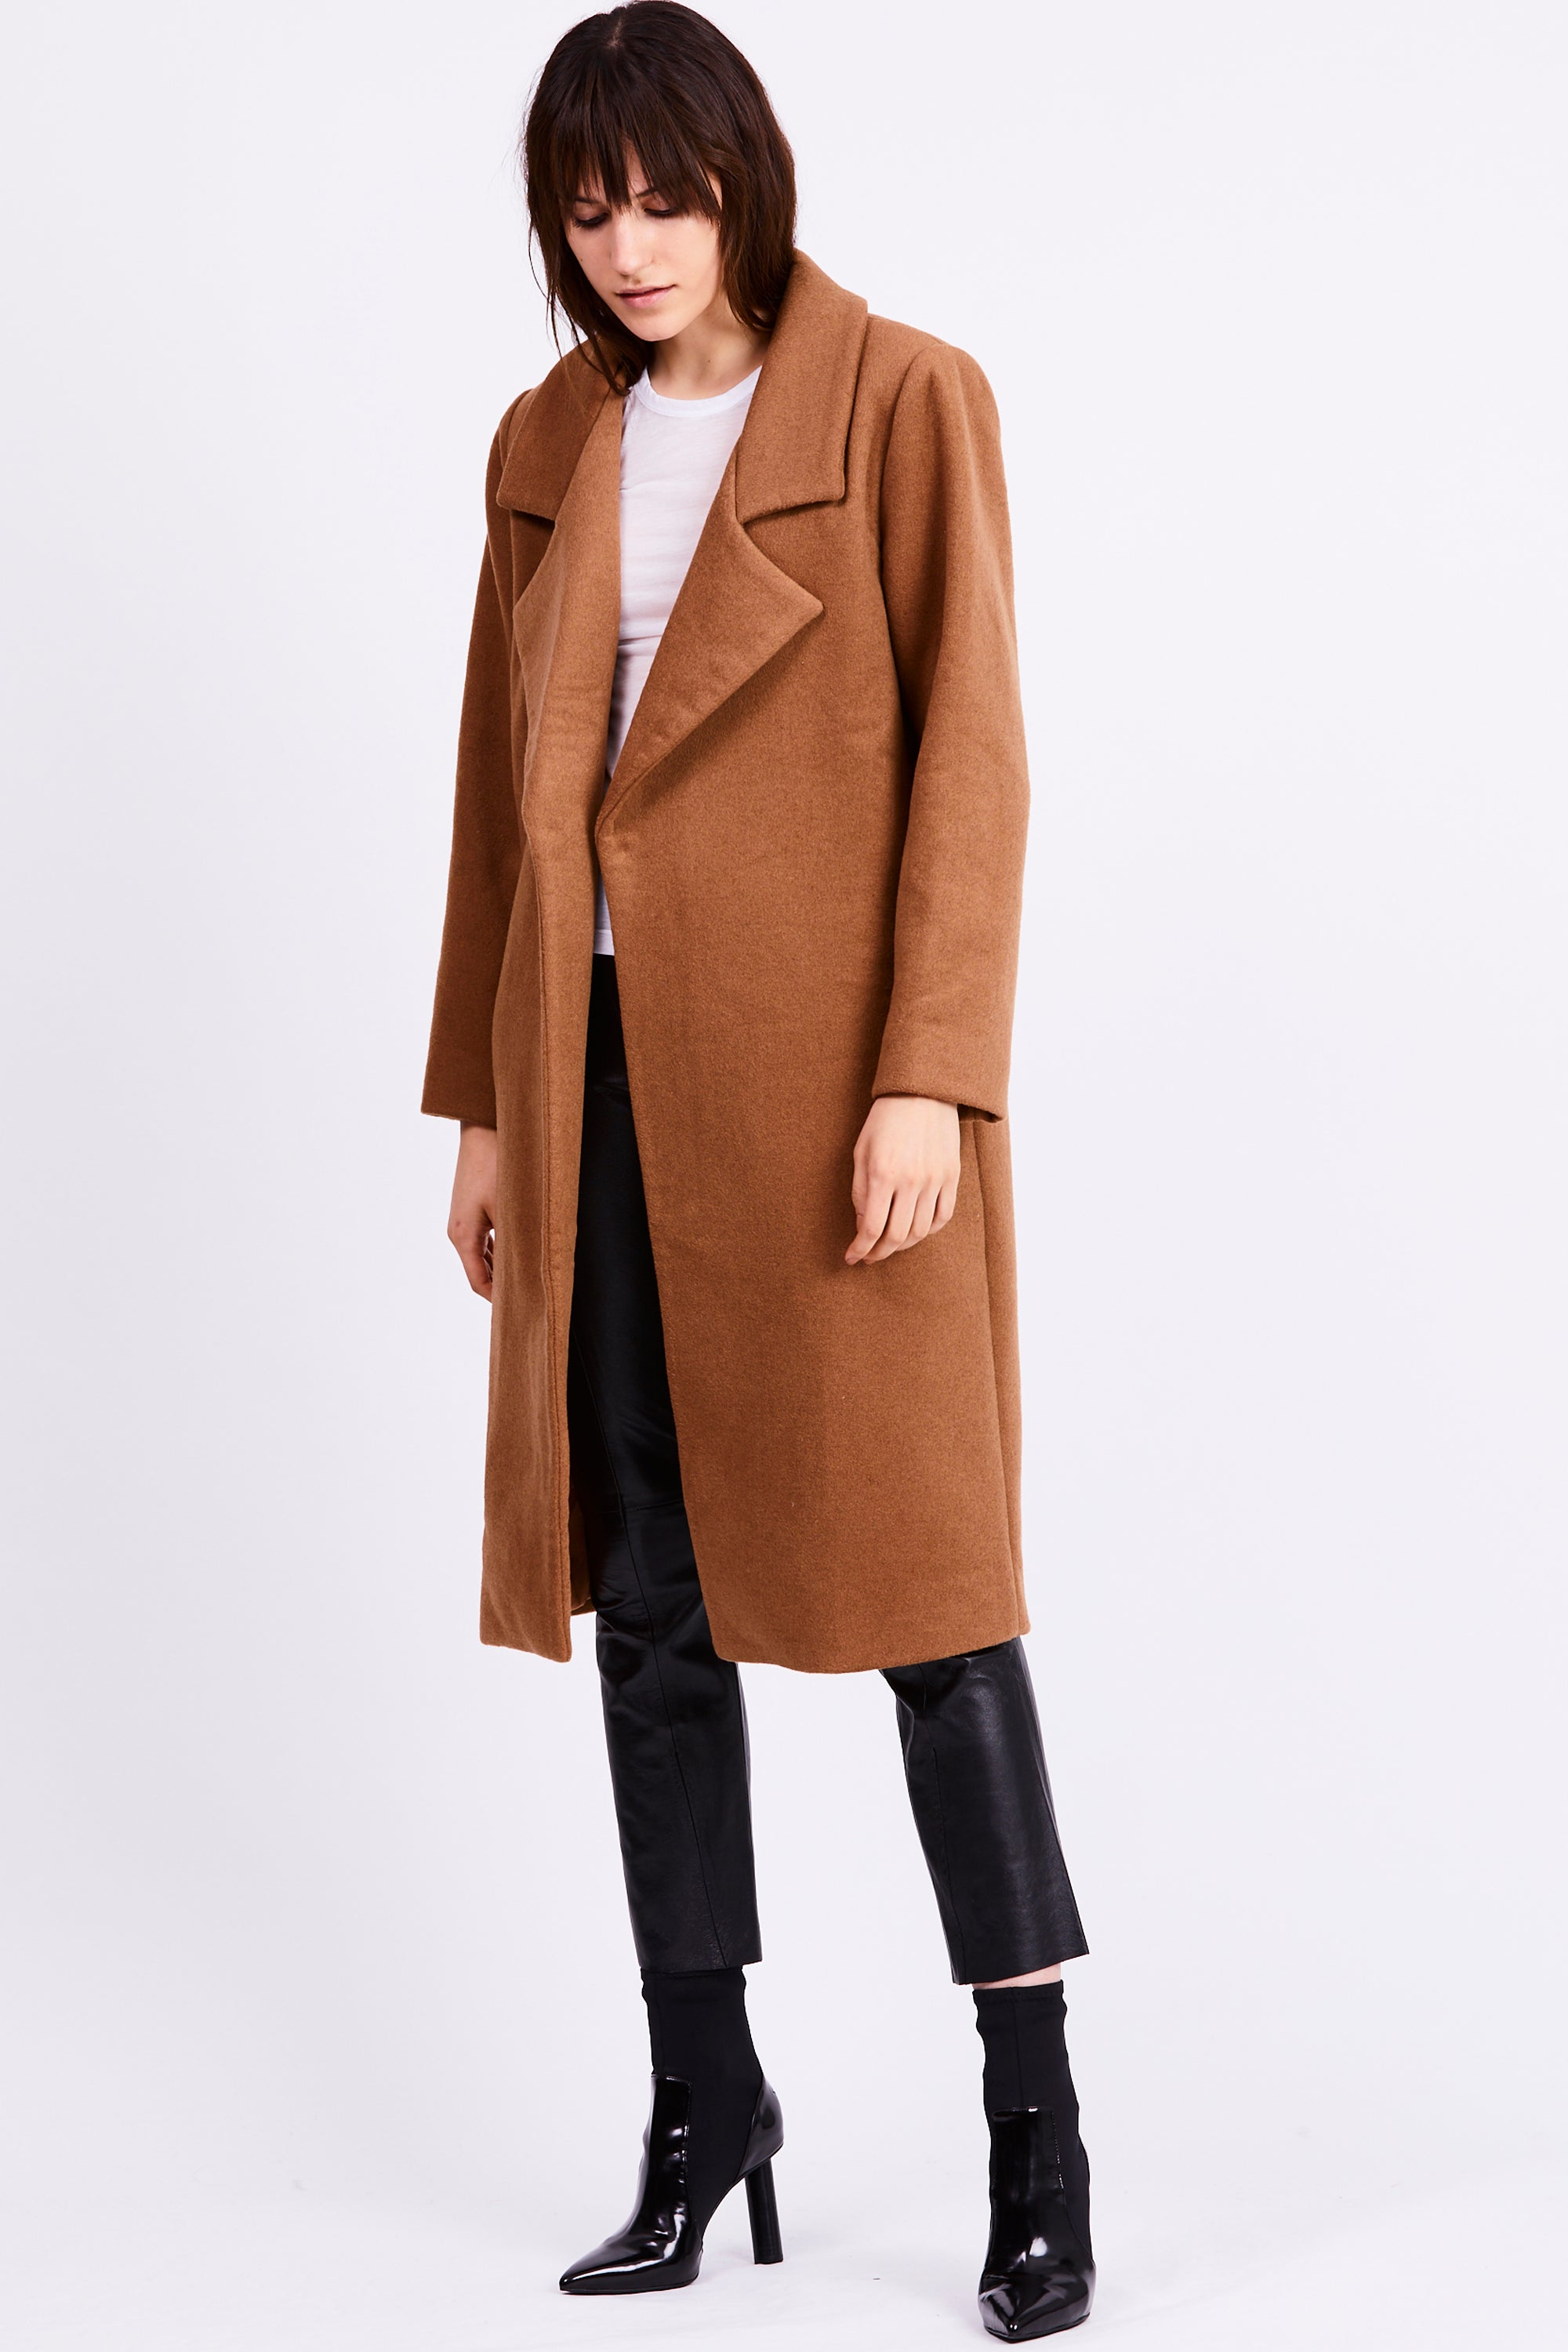 UNDER COVER COAT | CAMEL